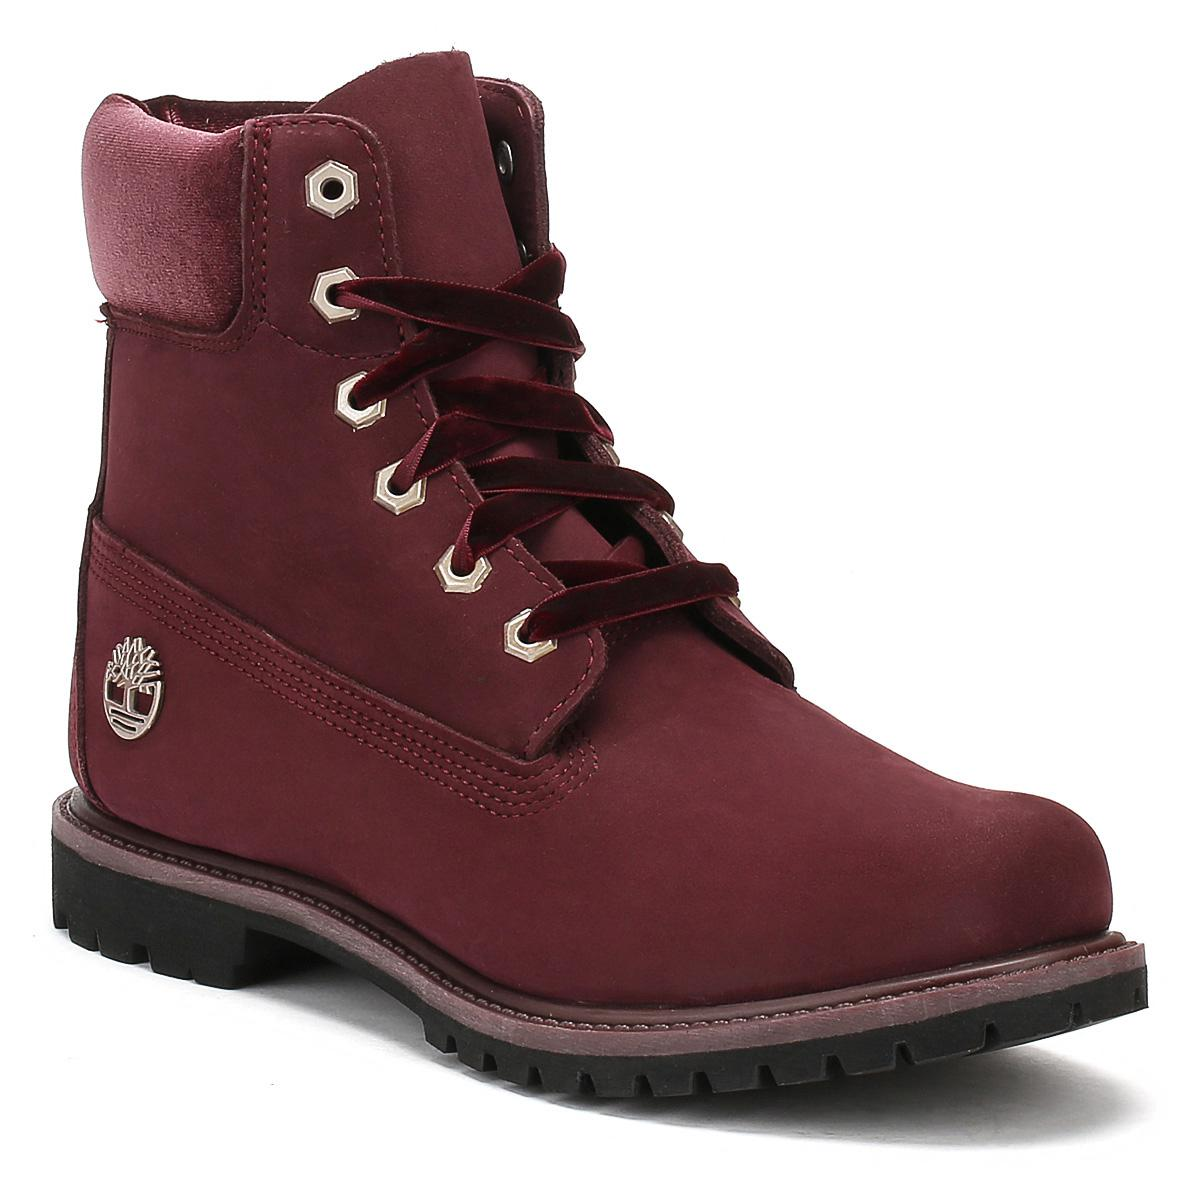 Lyst - Timberland Womens Jewels Pack Red Port 6 Inch Boots in Red